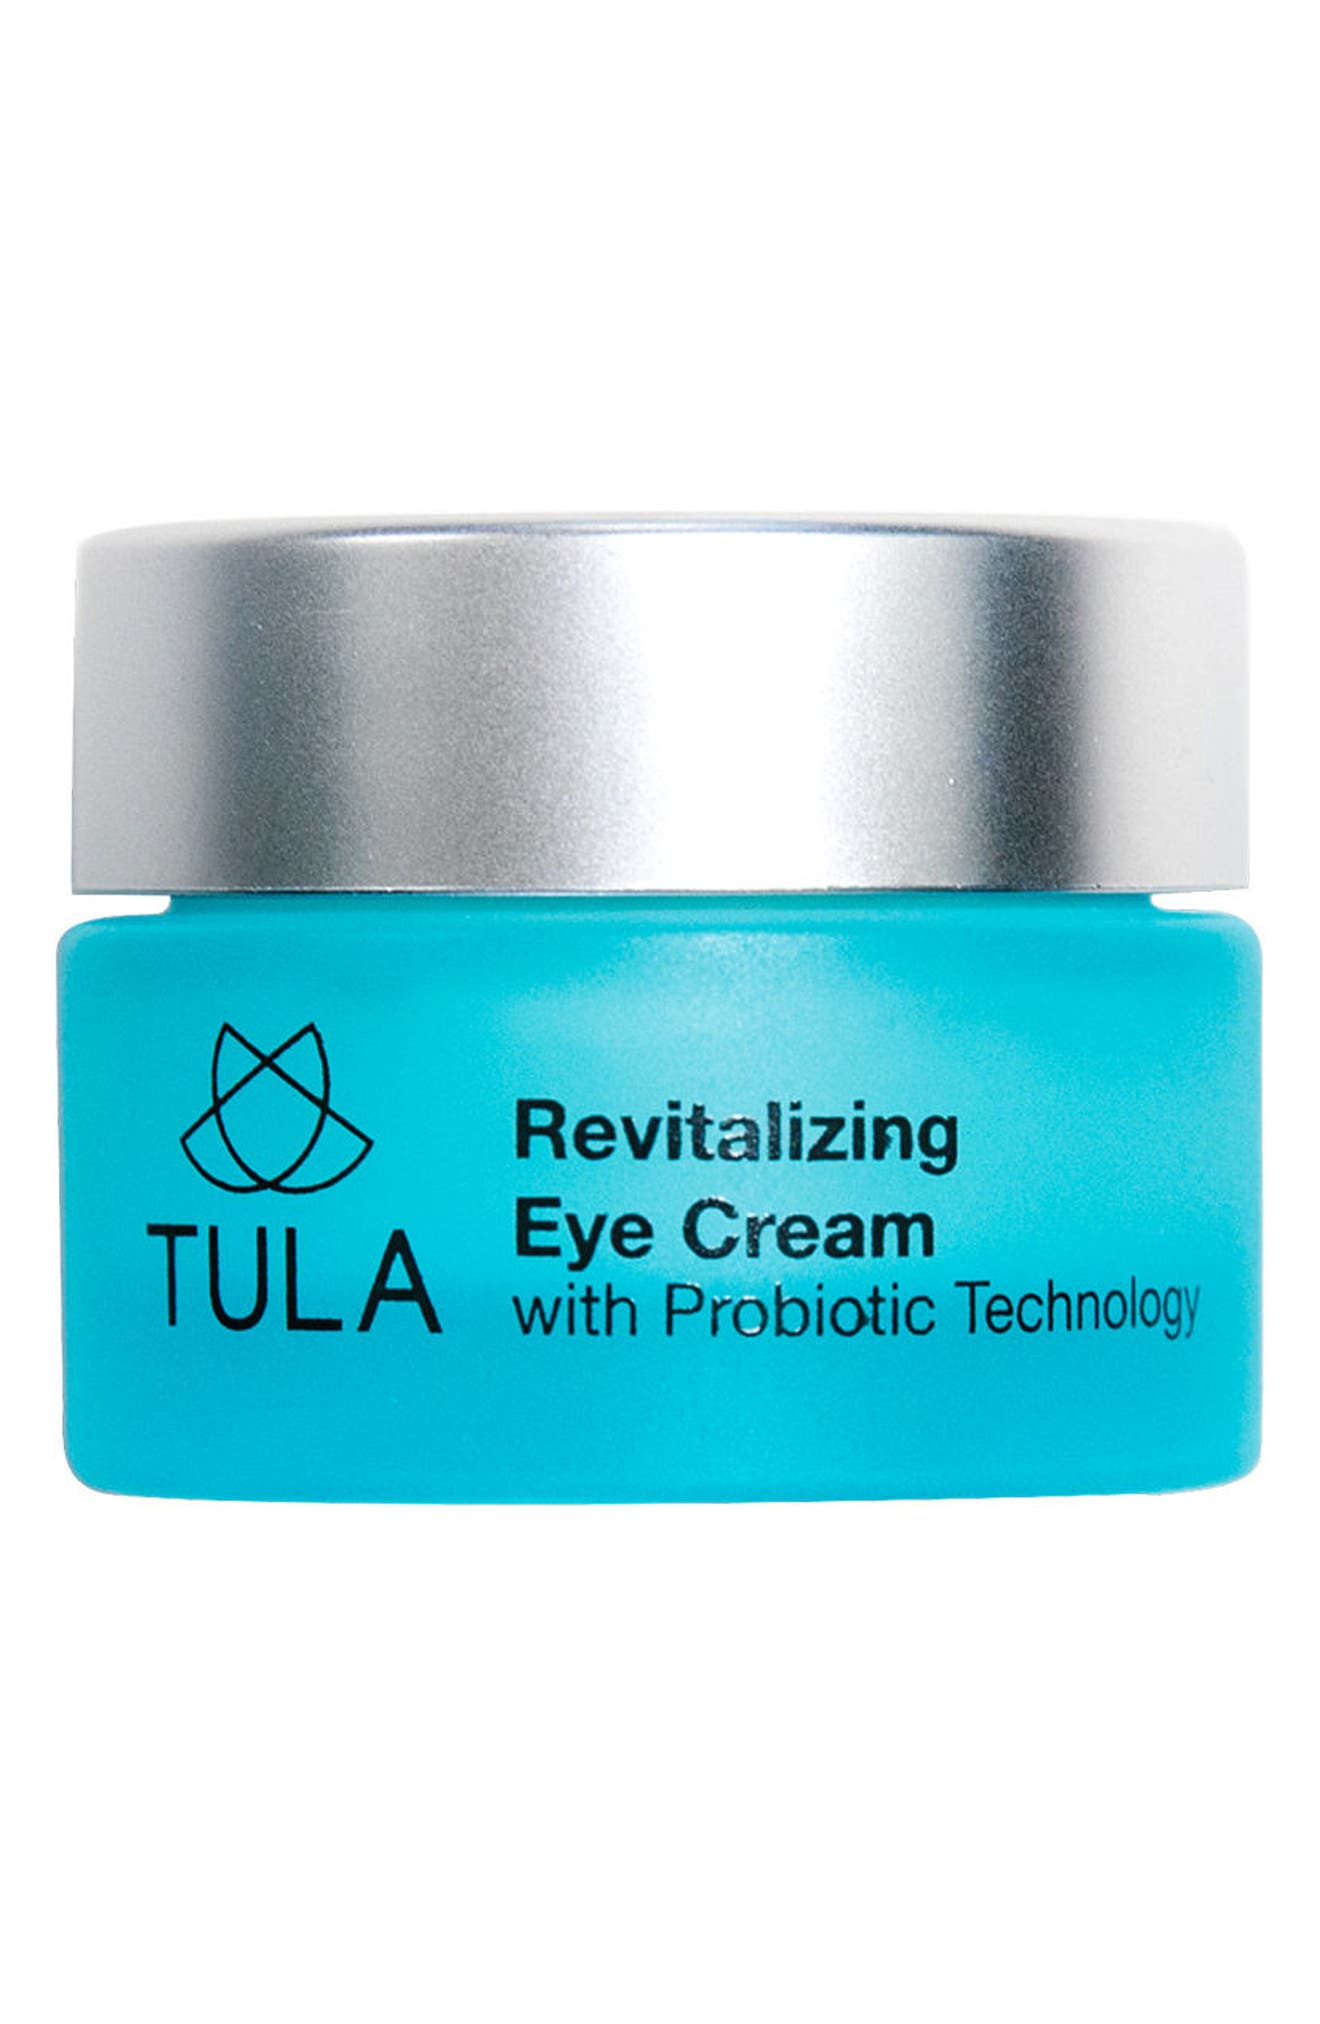 Alternate Image 1 Selected - Tula Probiotic Skincare Revitalizing Eye Cream